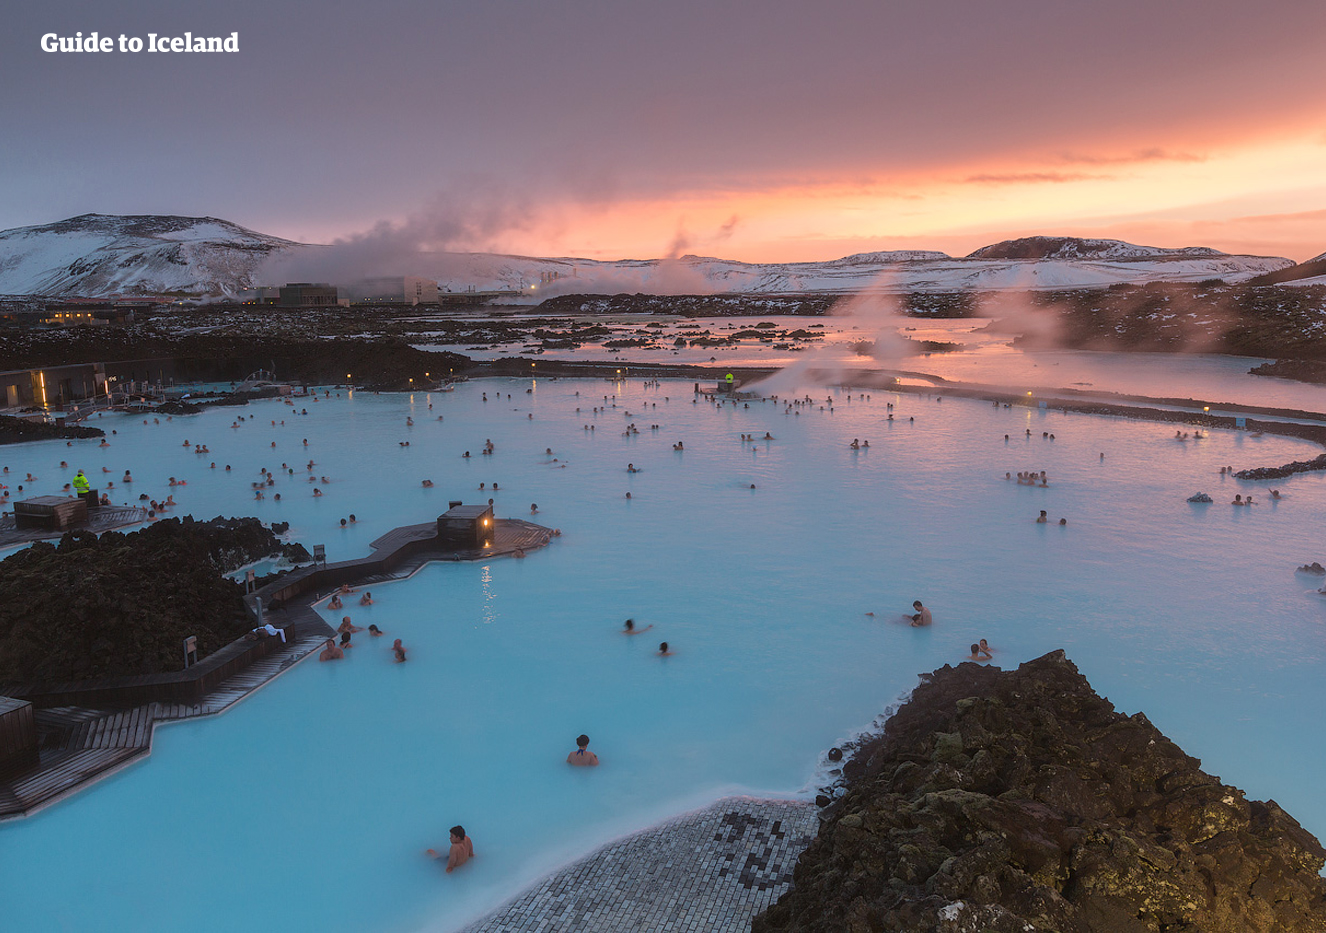 The Blue Lagoon at golden hour